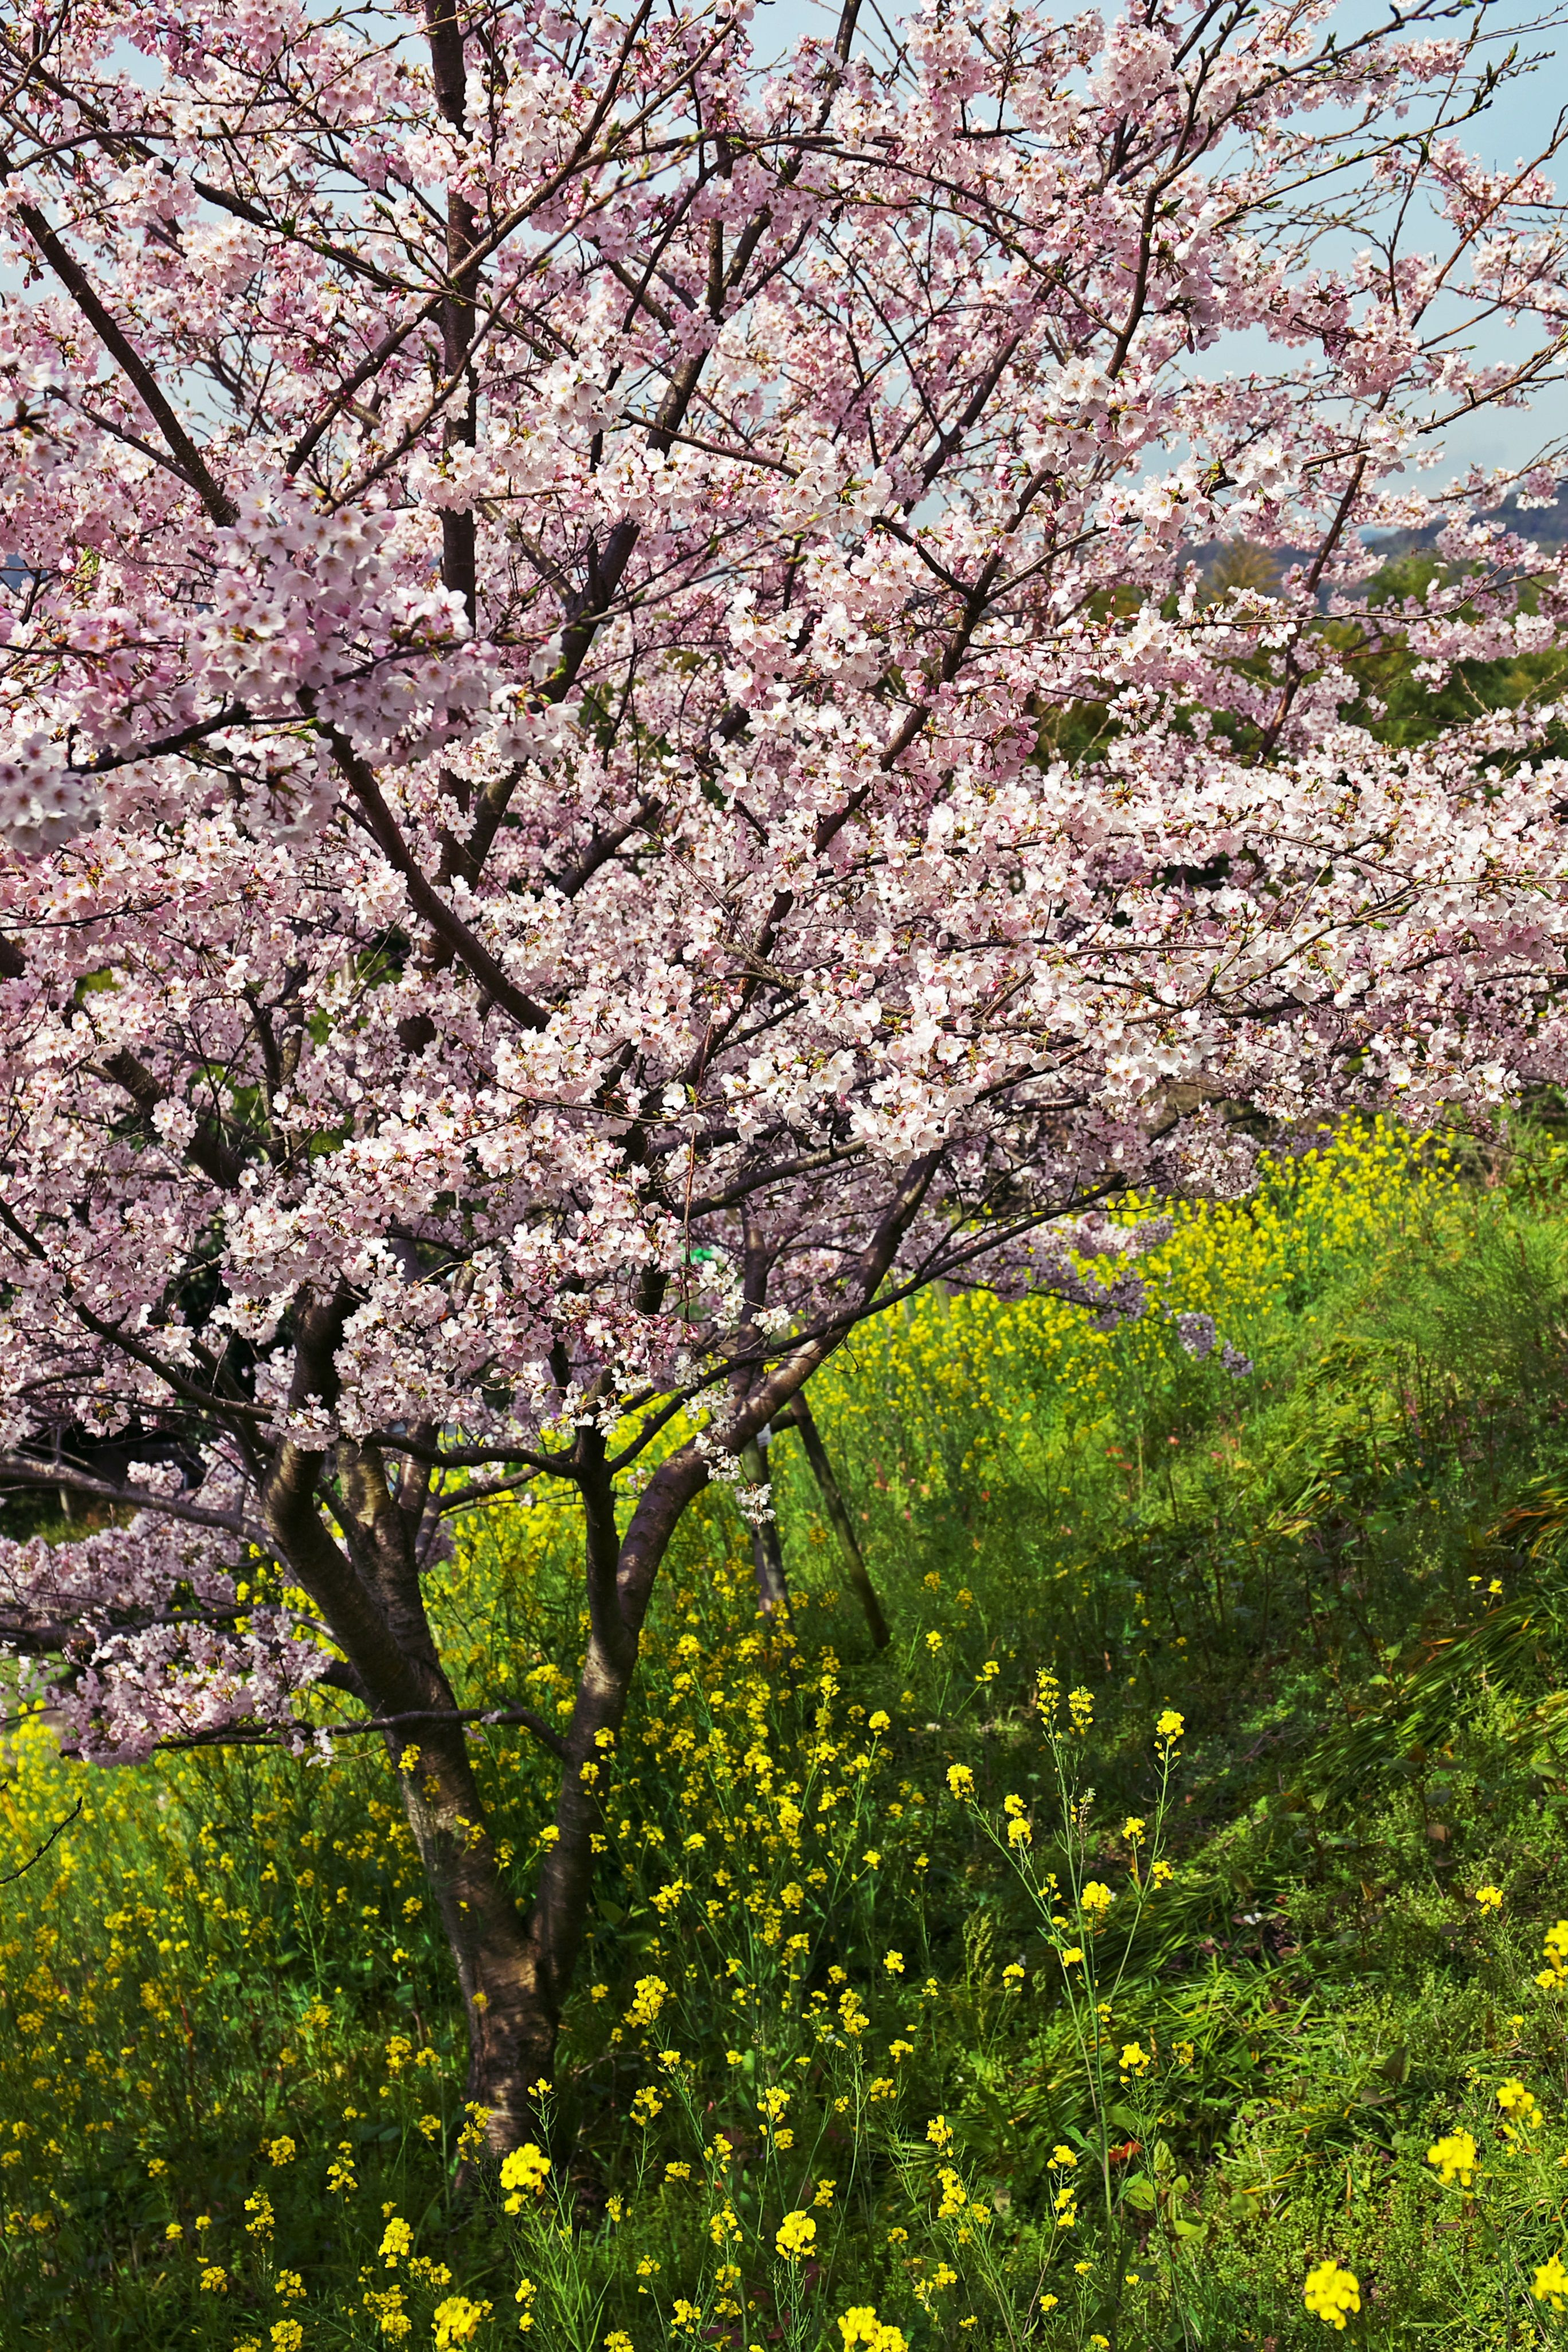 Cherry Blossom A Symbol Of The Beauty Of Spring In Japan Cherry Blossom Blossom Tree